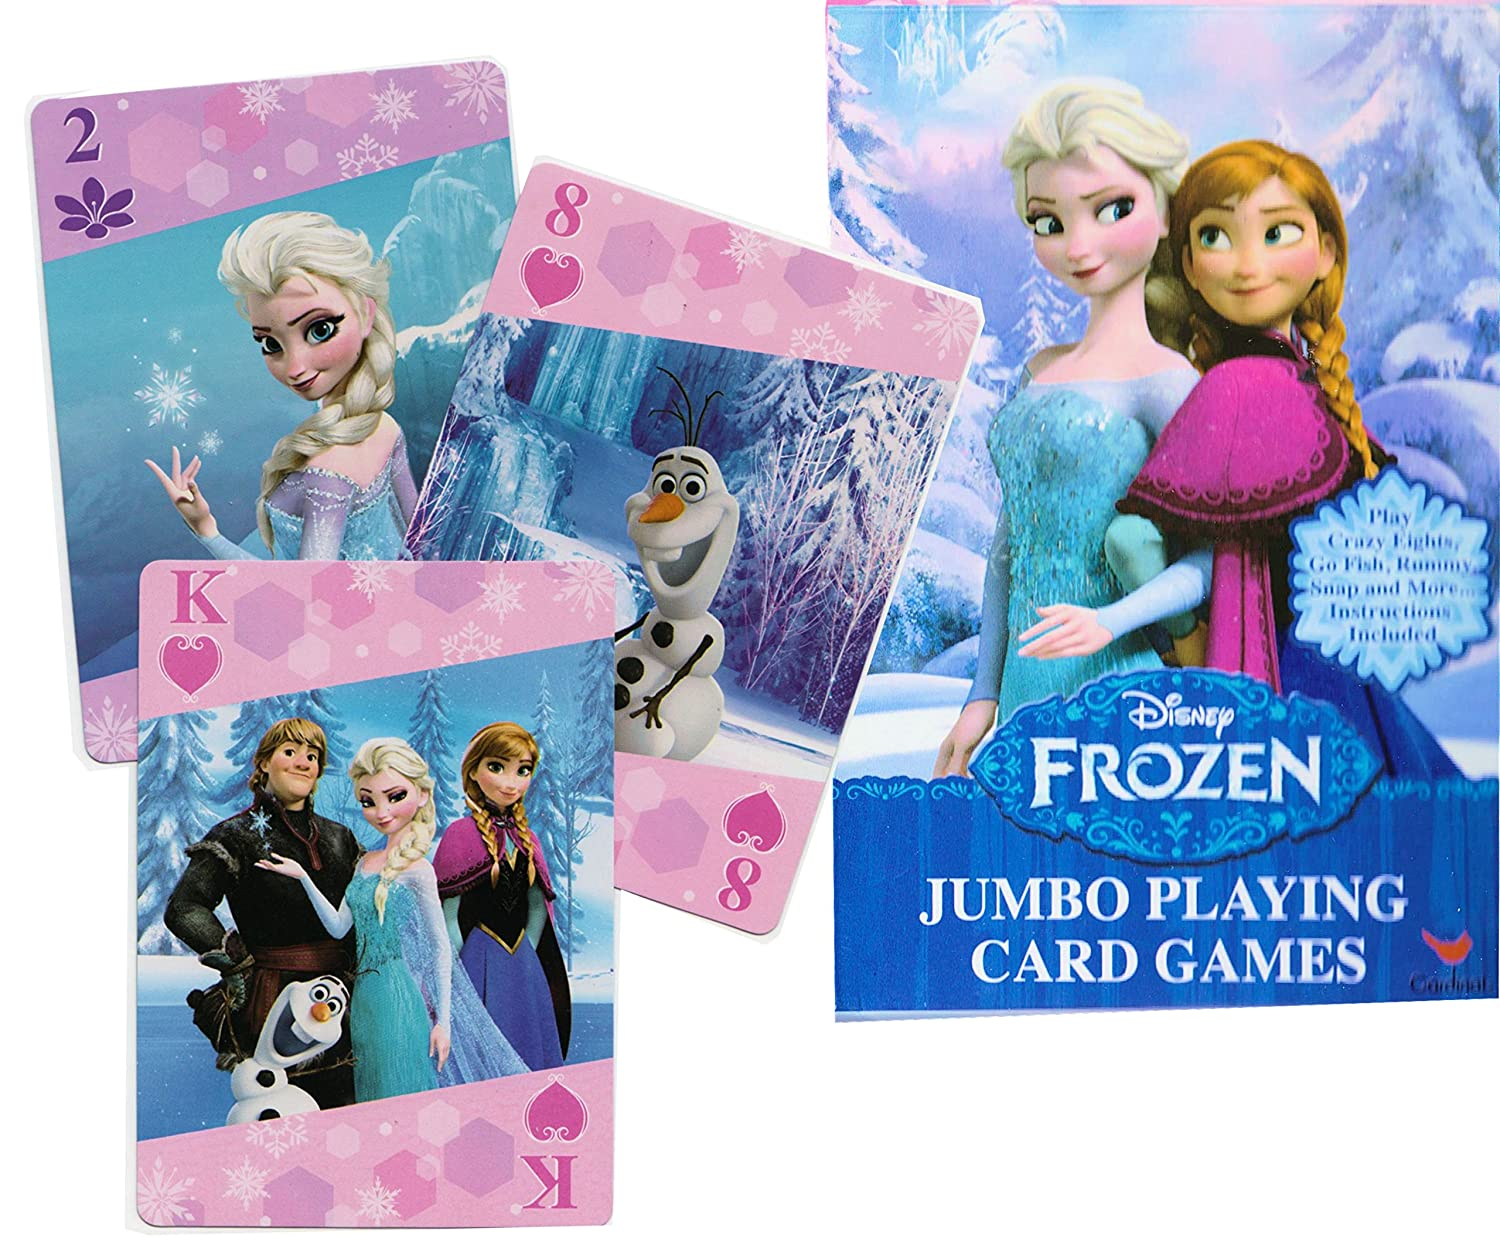 For that Disney frozen movie simply